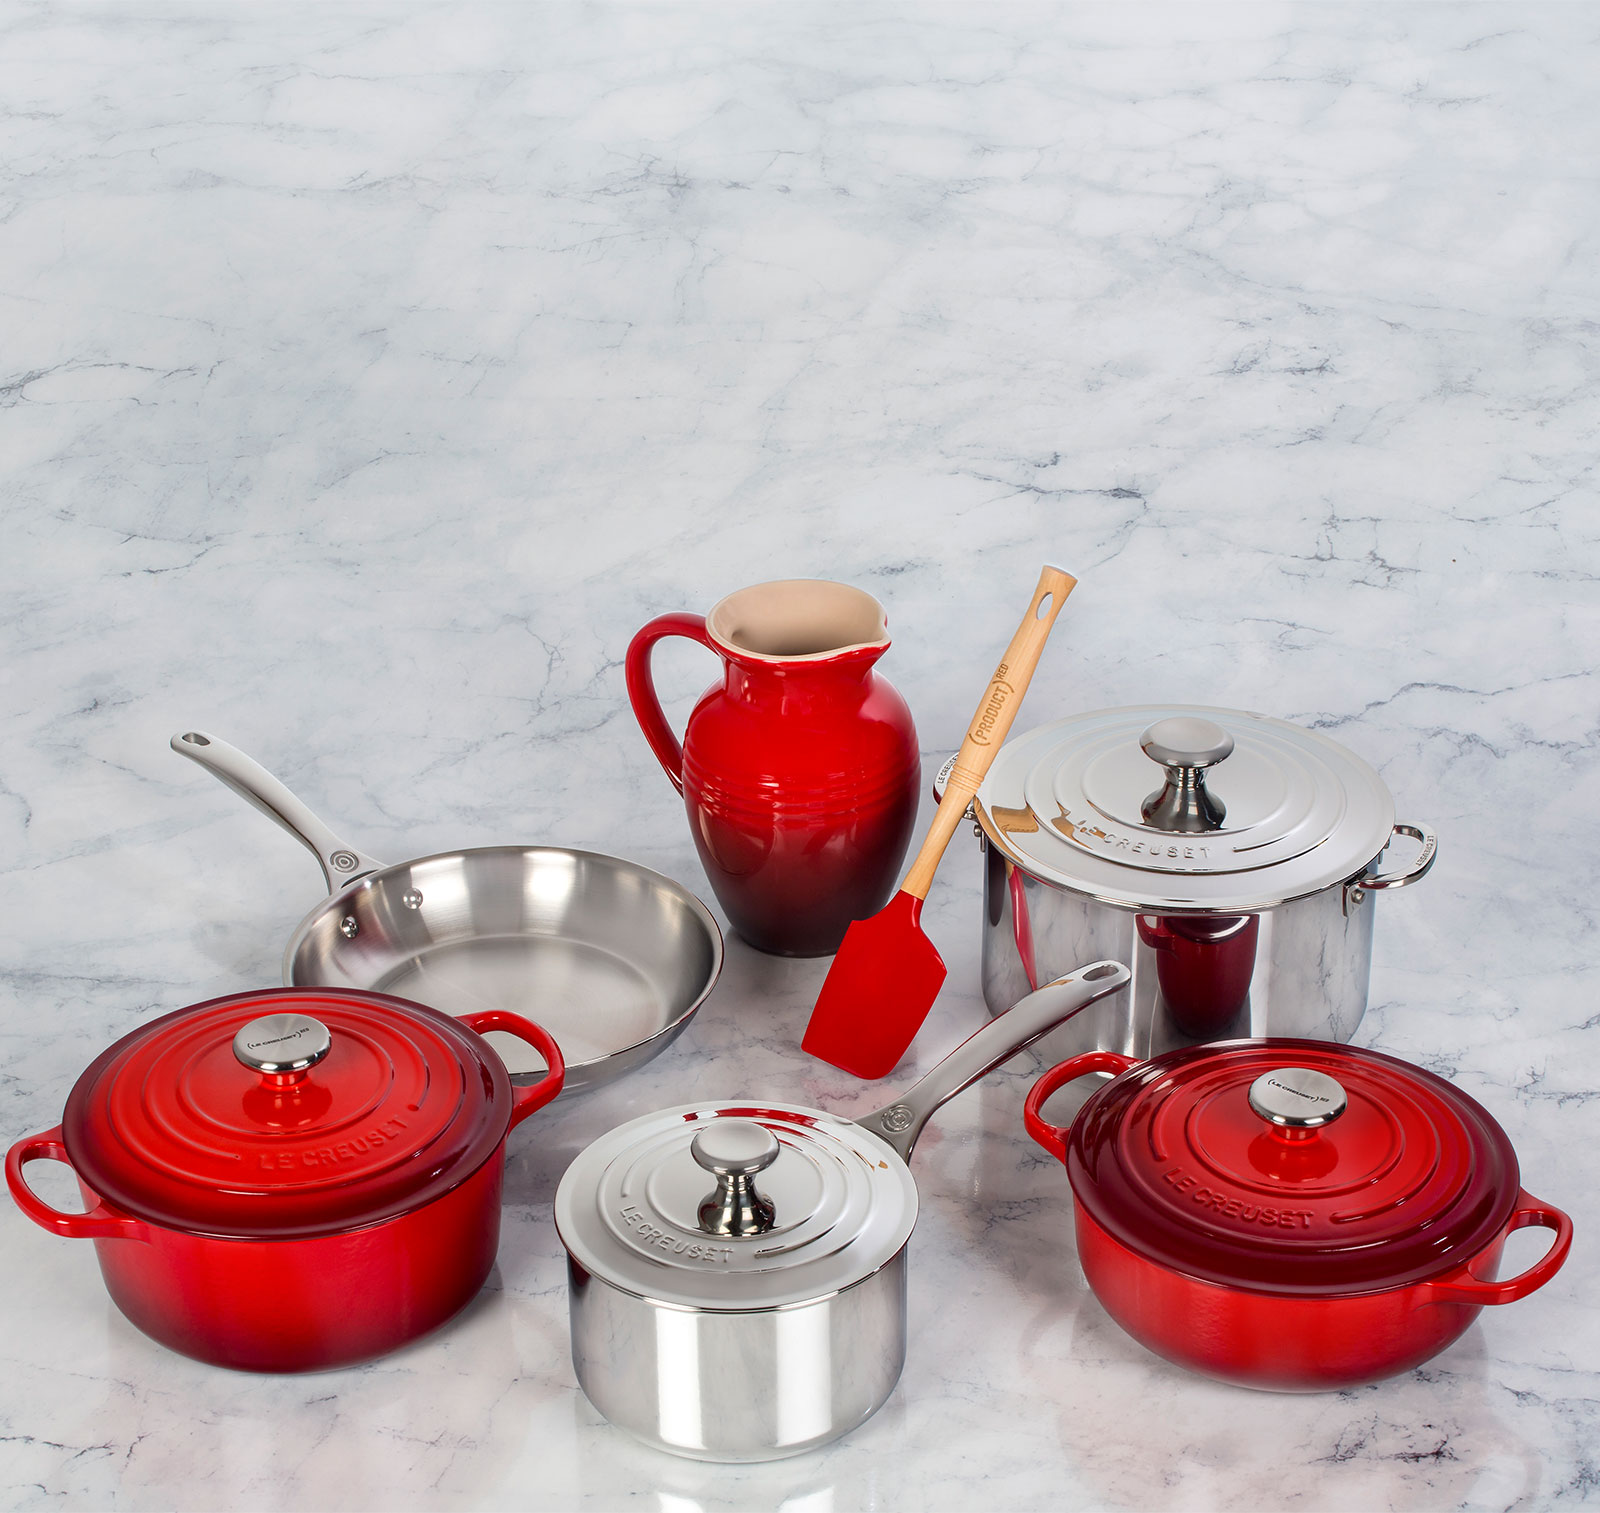 Le Creuset Red Products